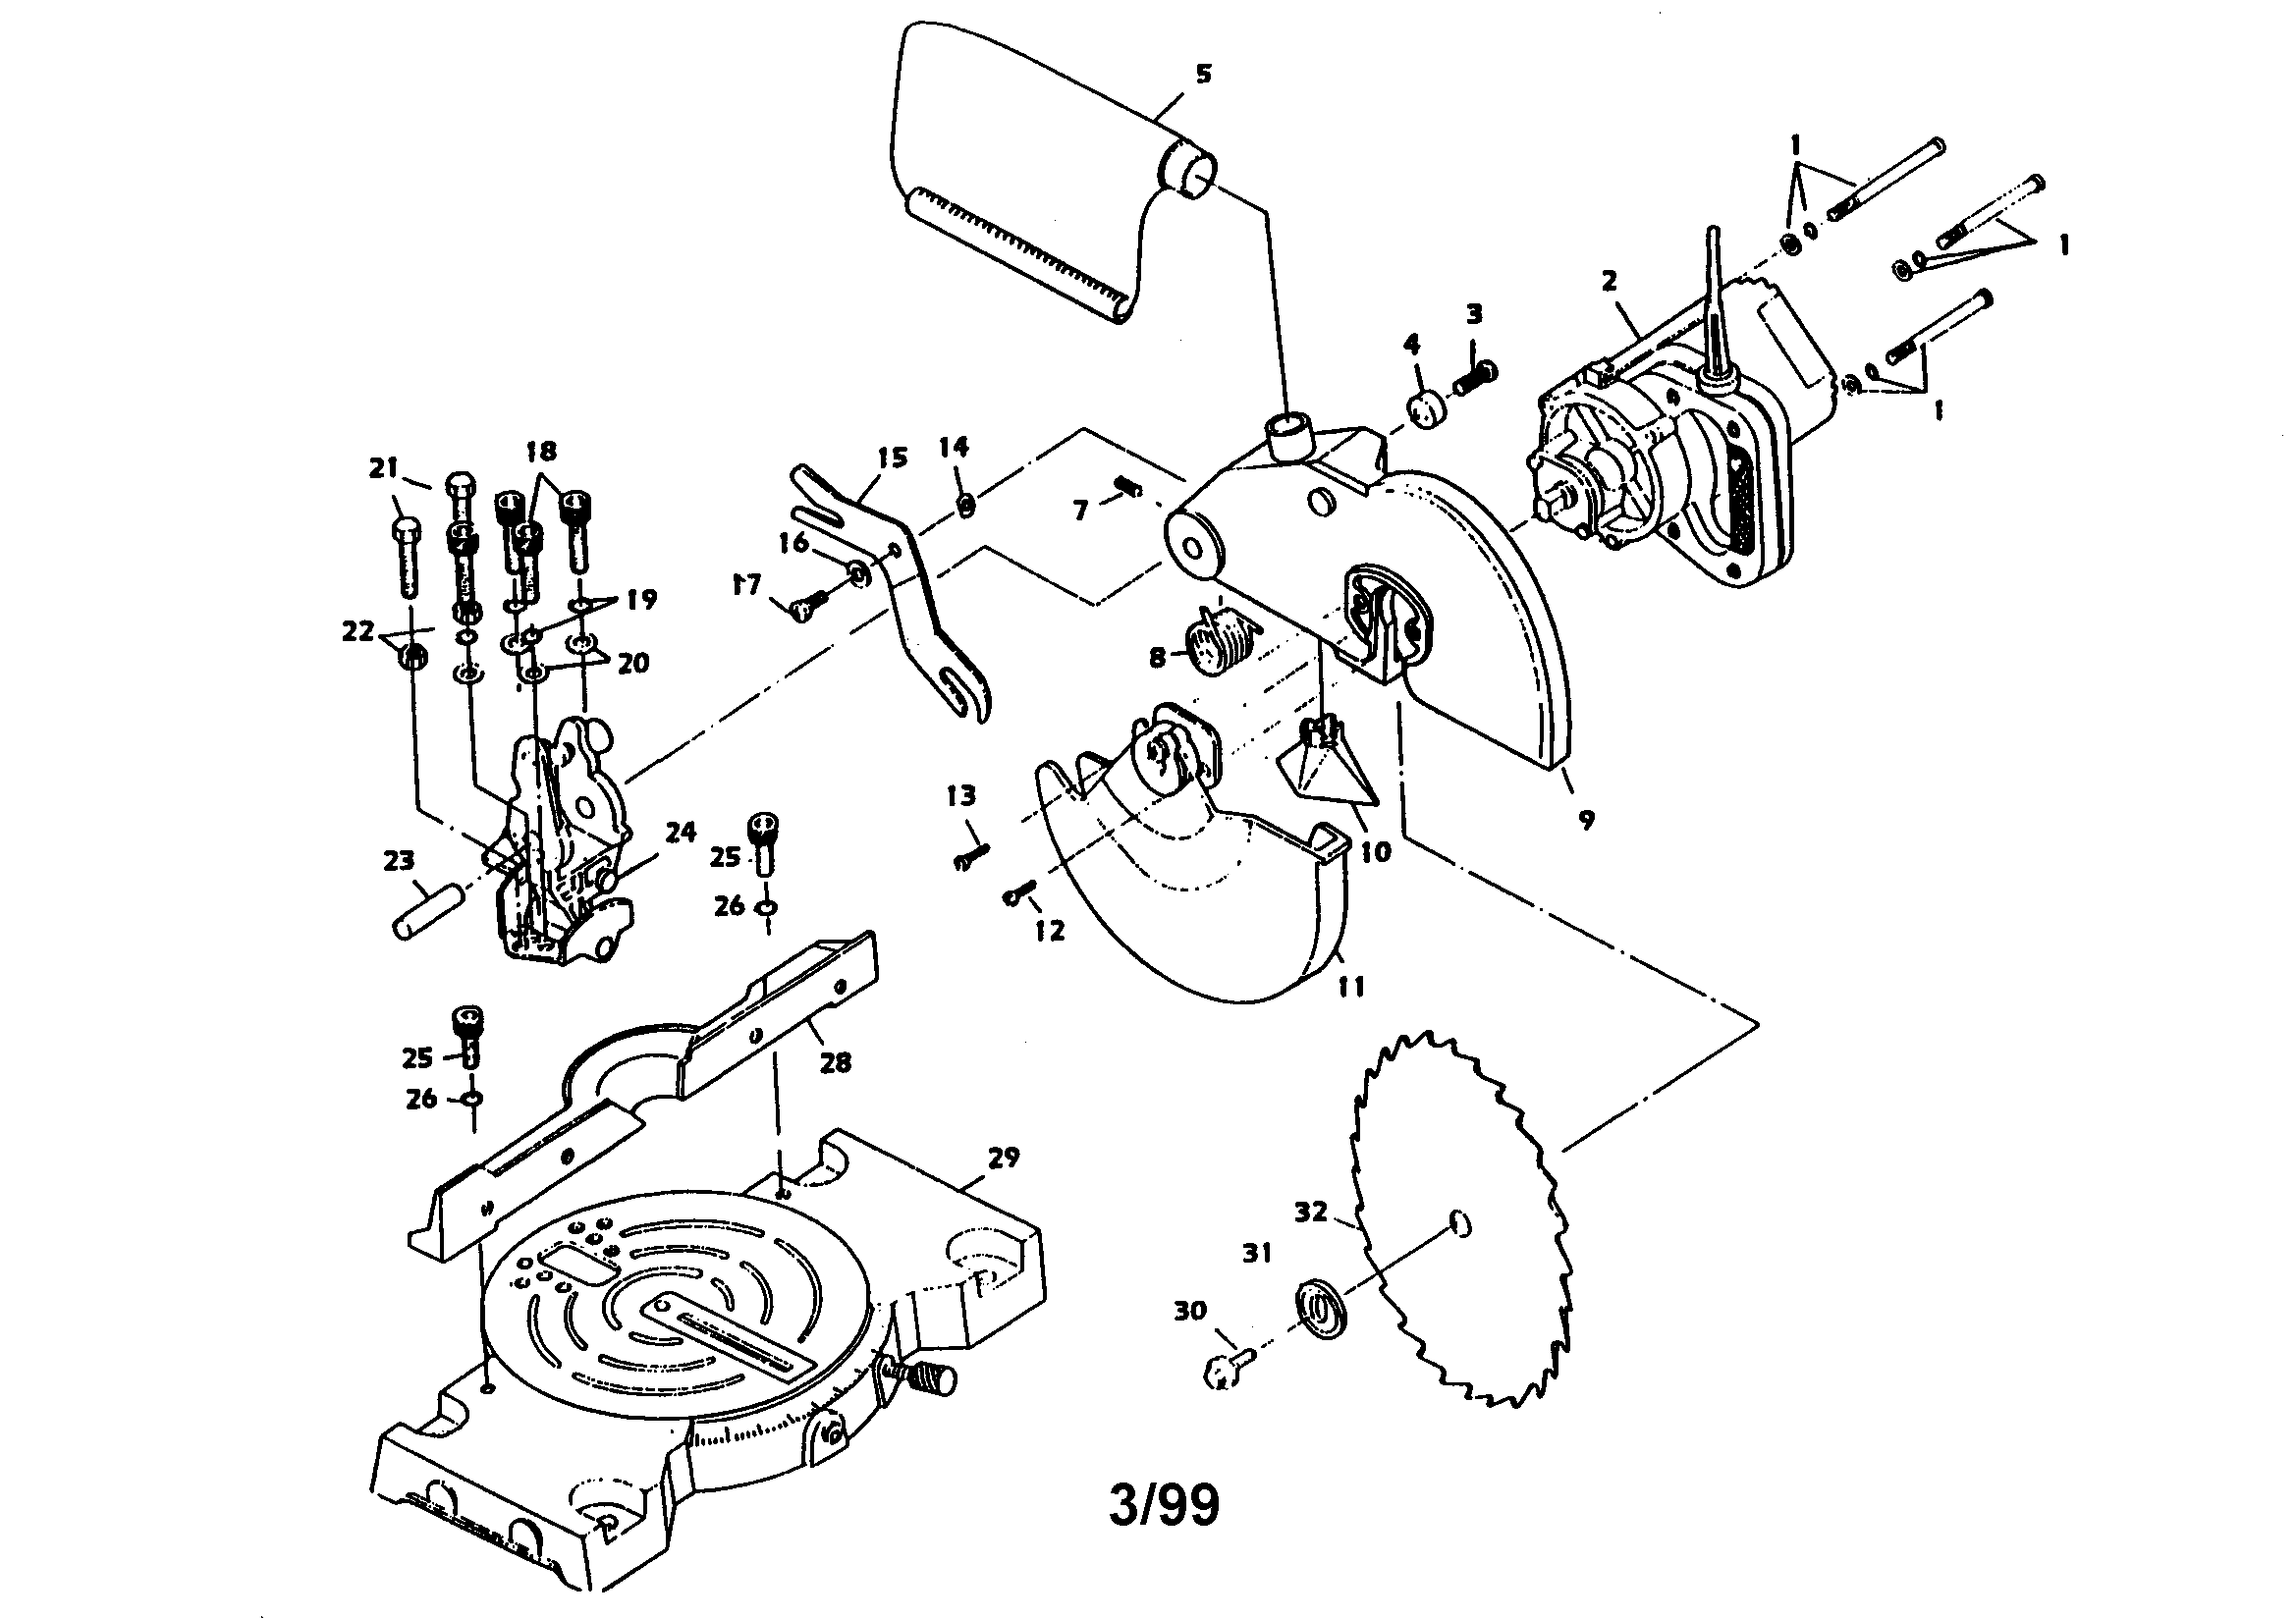 Pro-Tech model 7203 TYPE 2 miter saw genuine parts